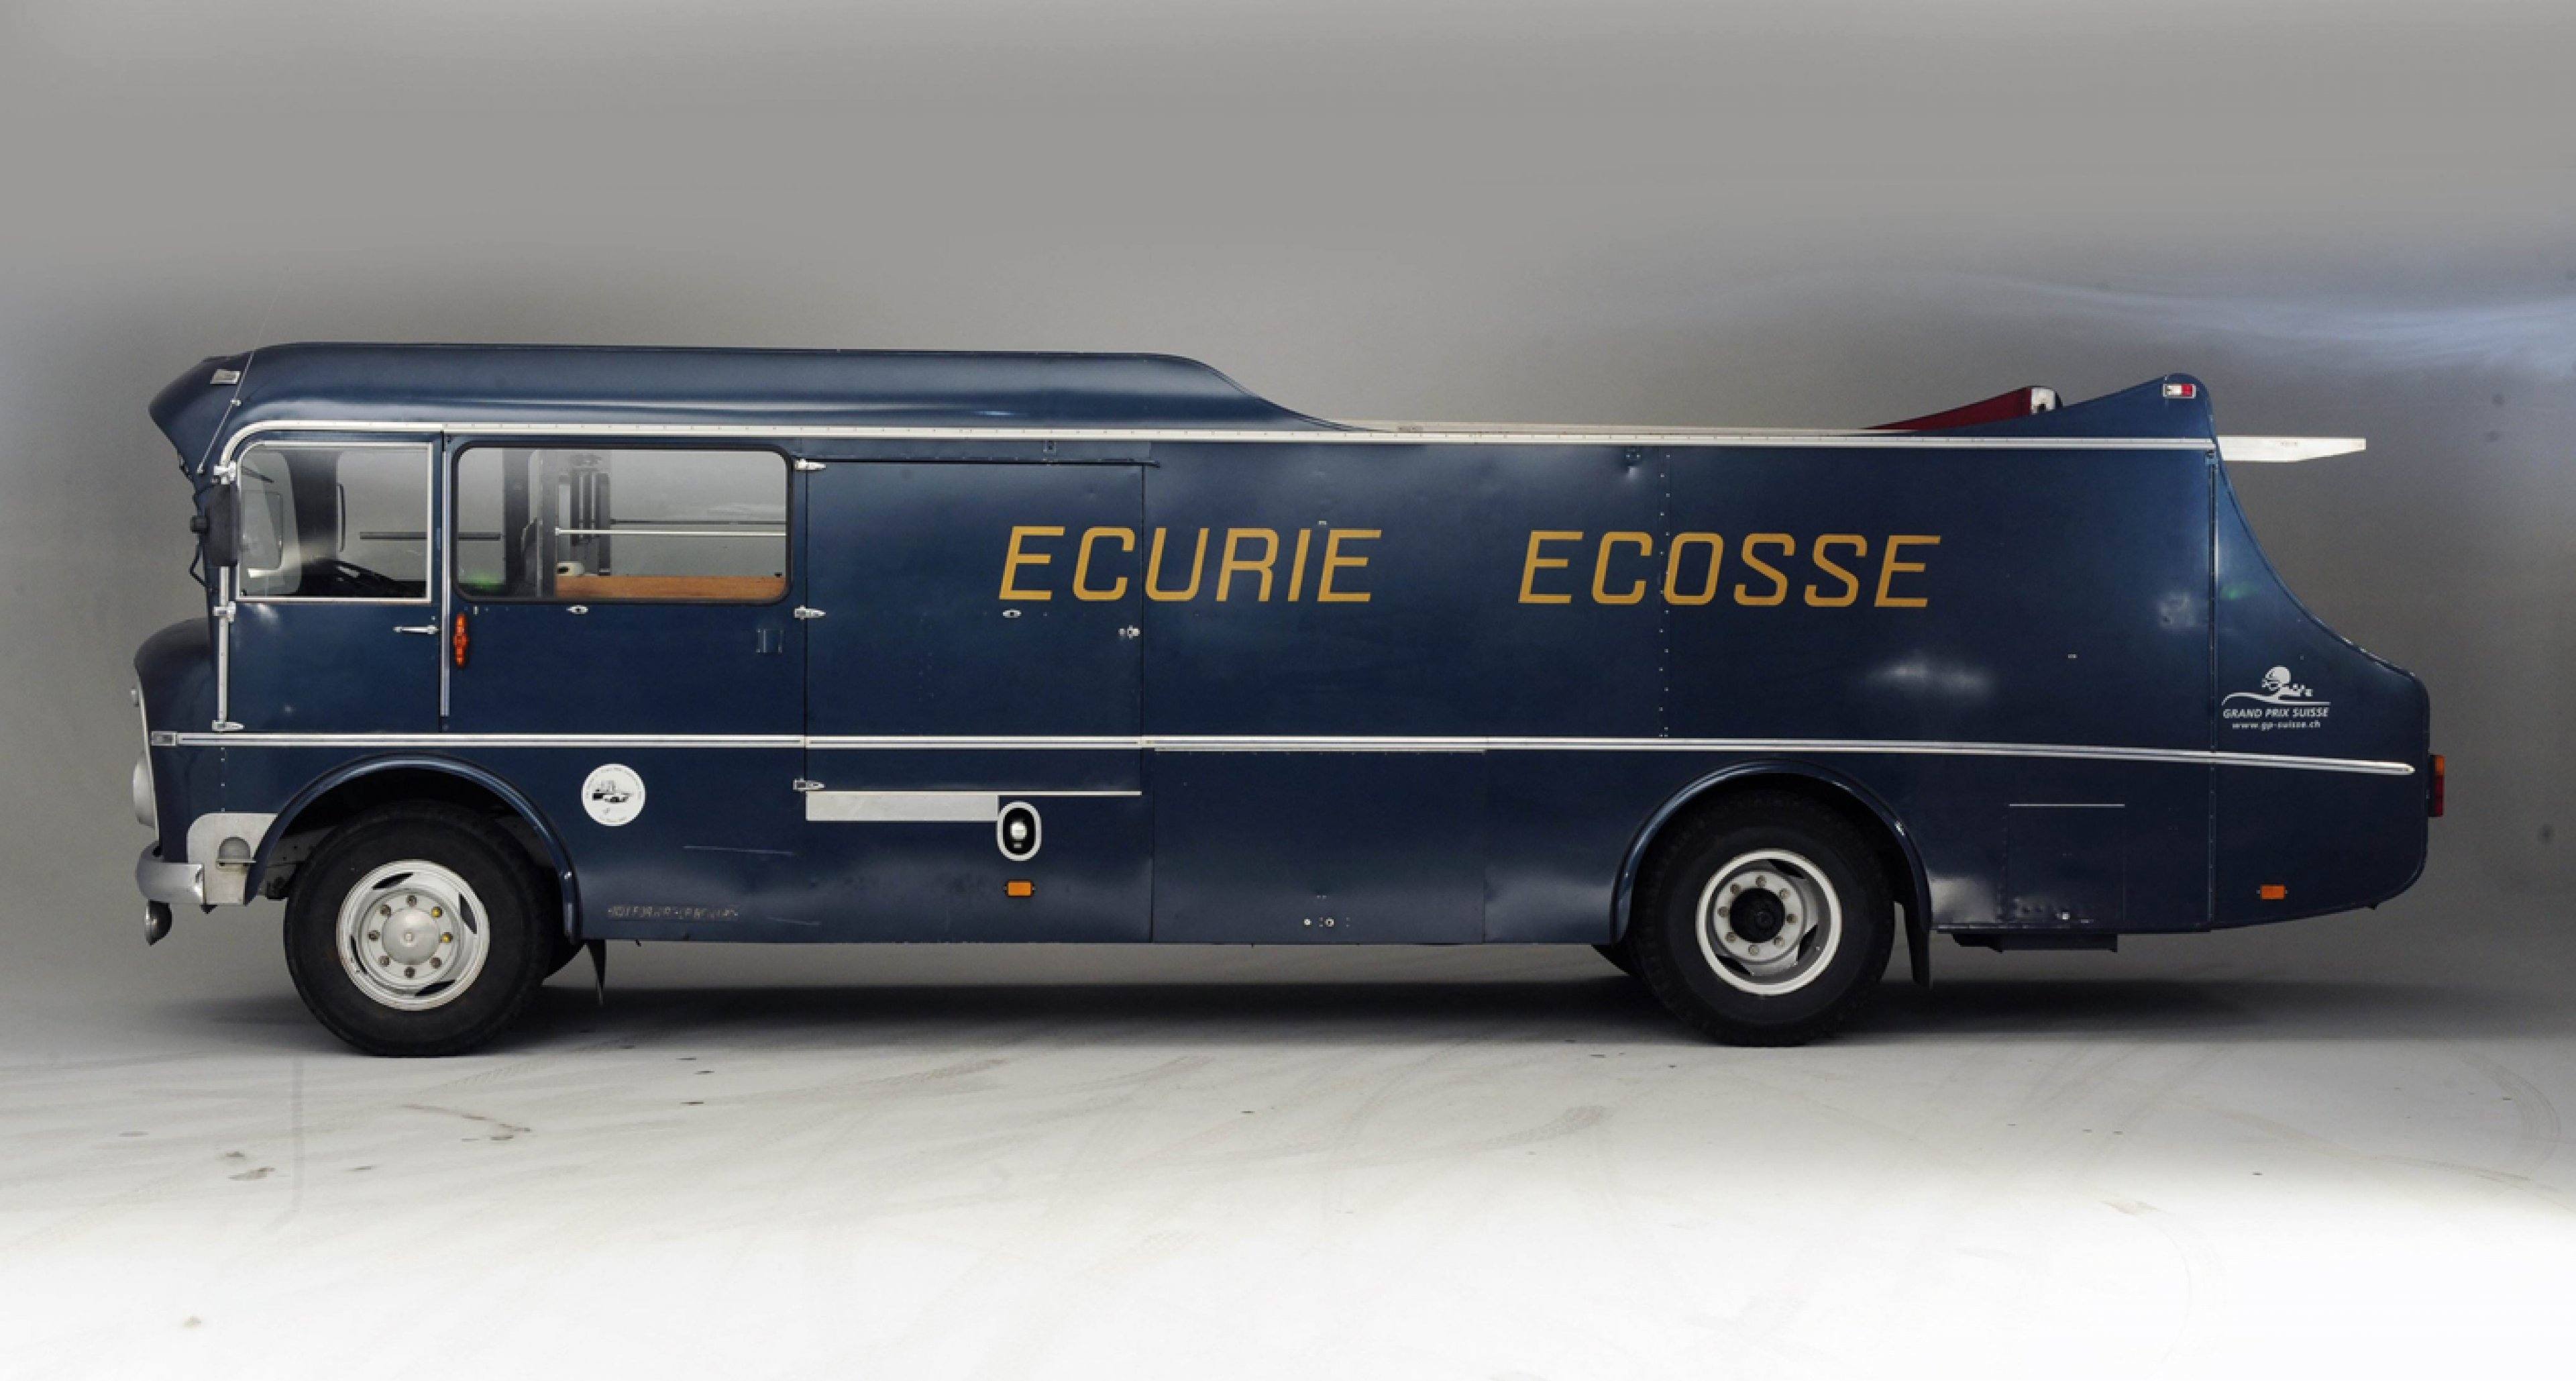 Ecurie Ecosse's famous Commer Transporter